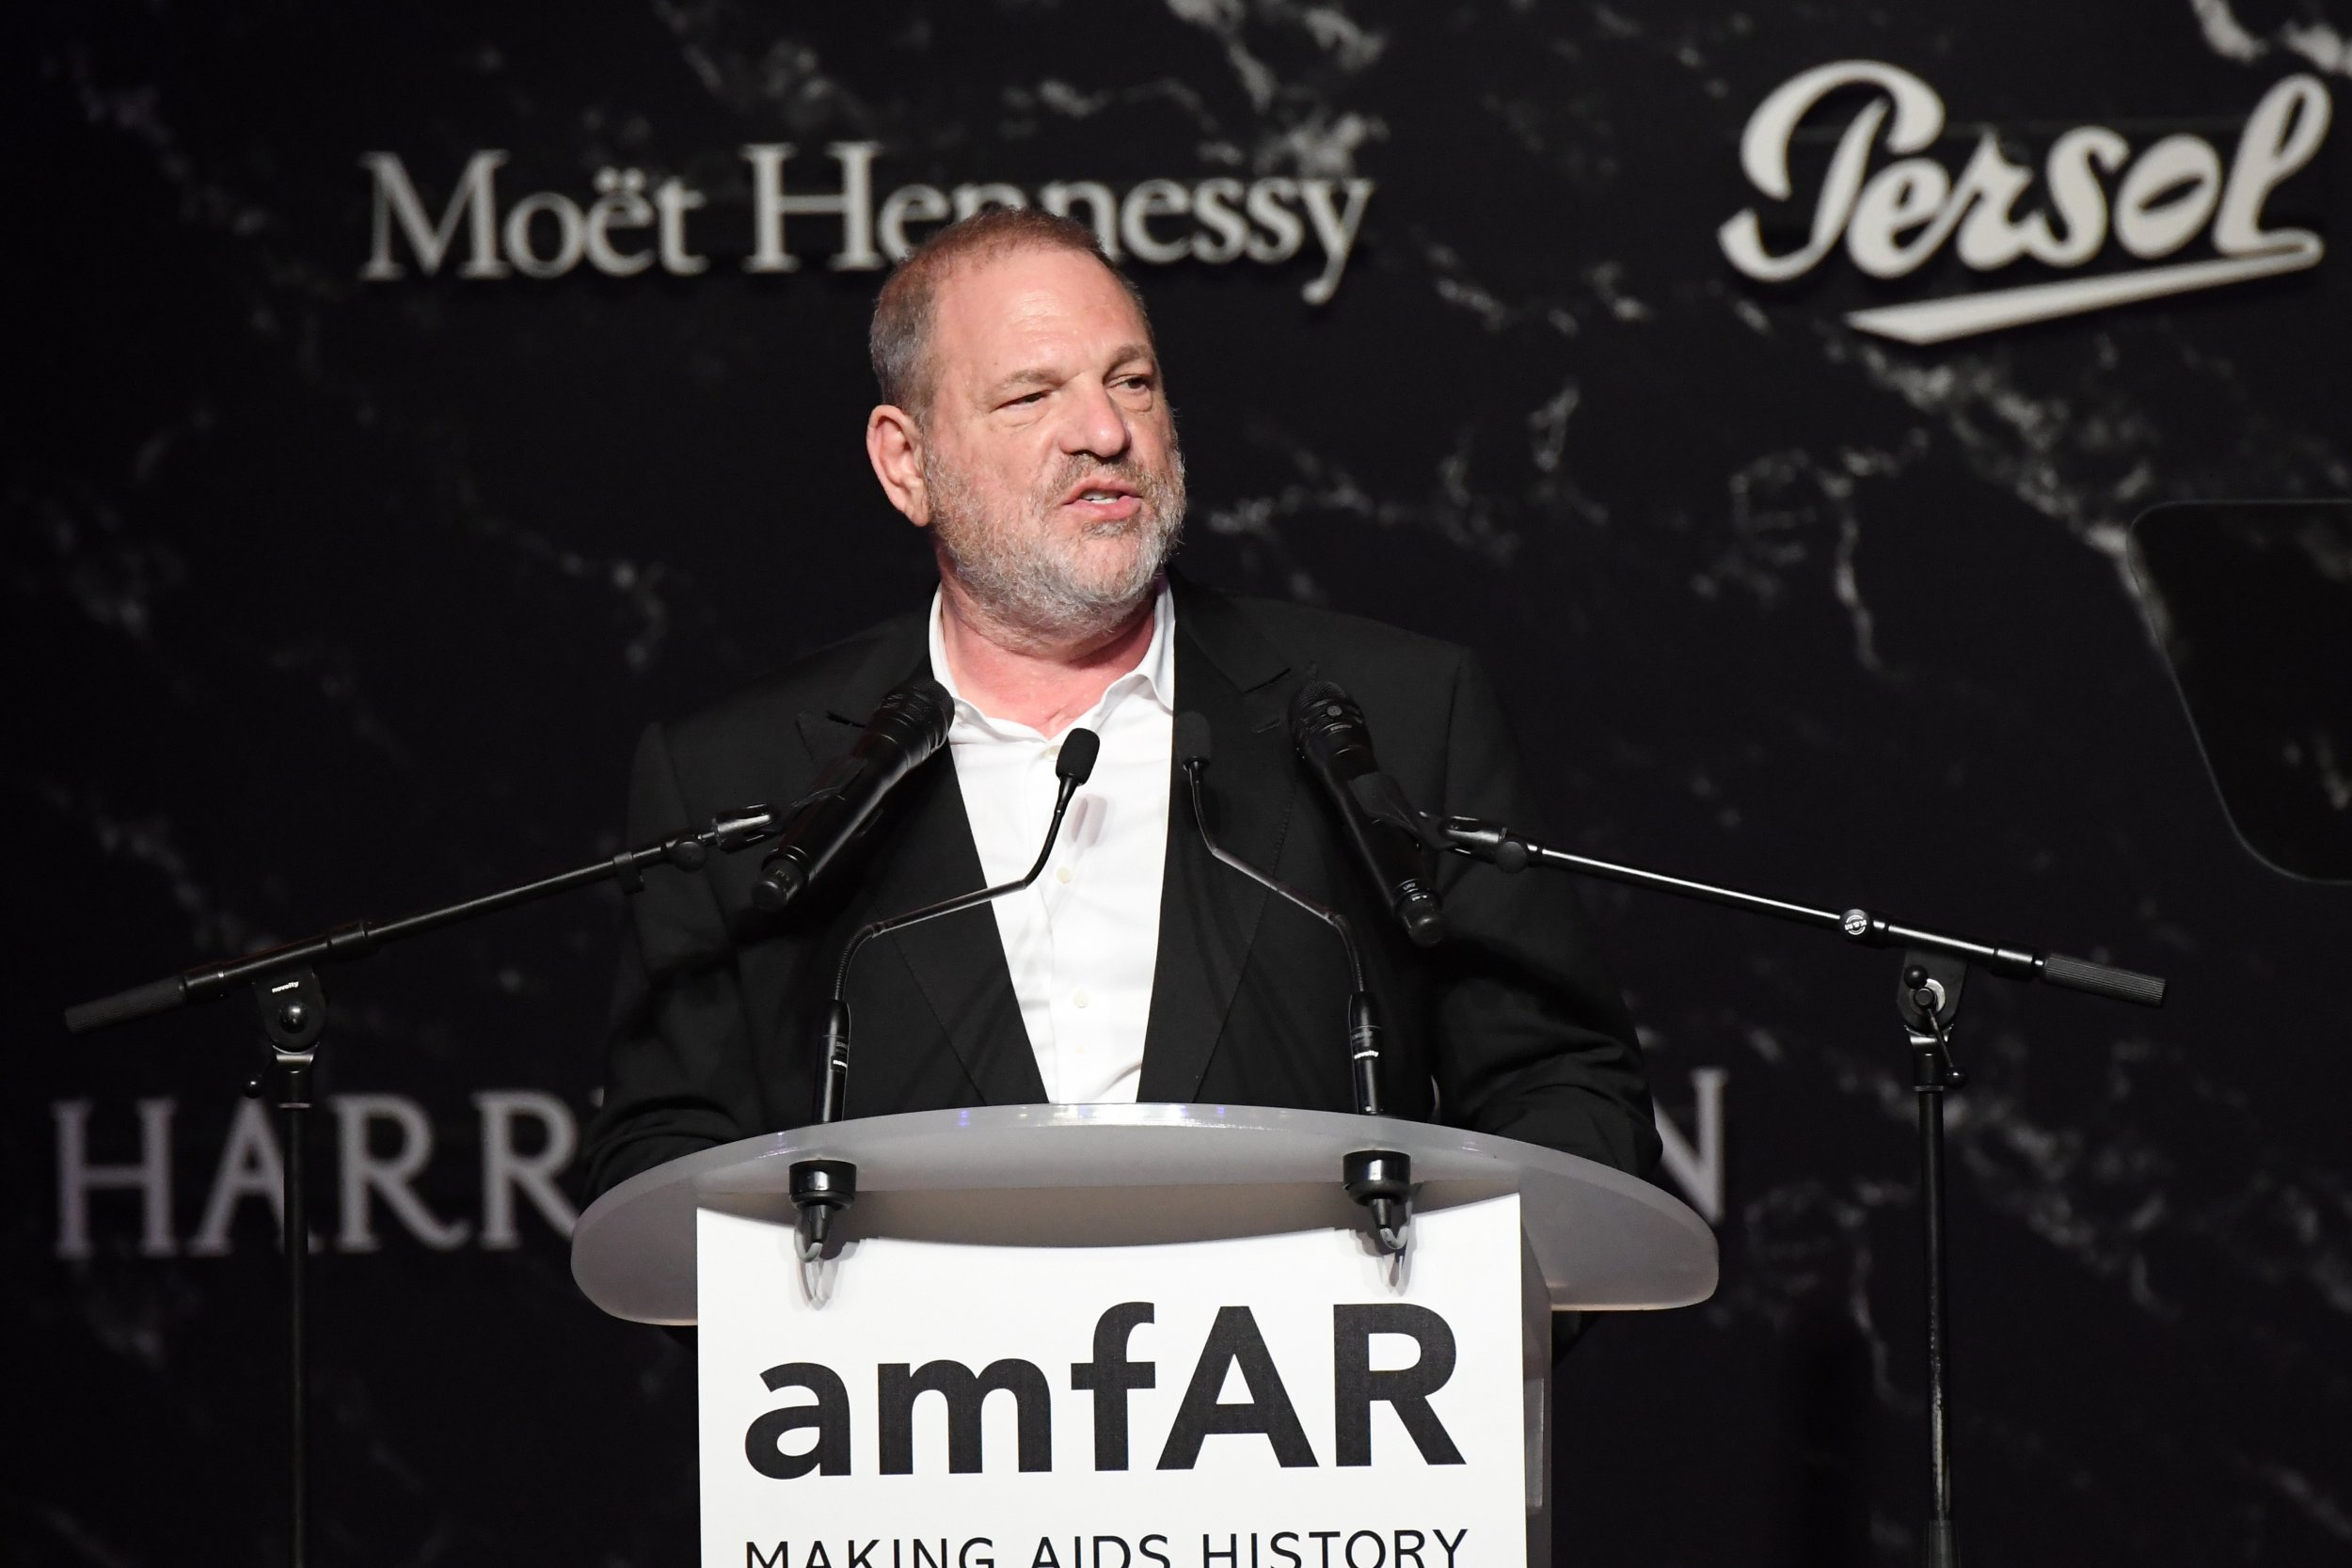 Harvey Weinstein NYPD audio recording released